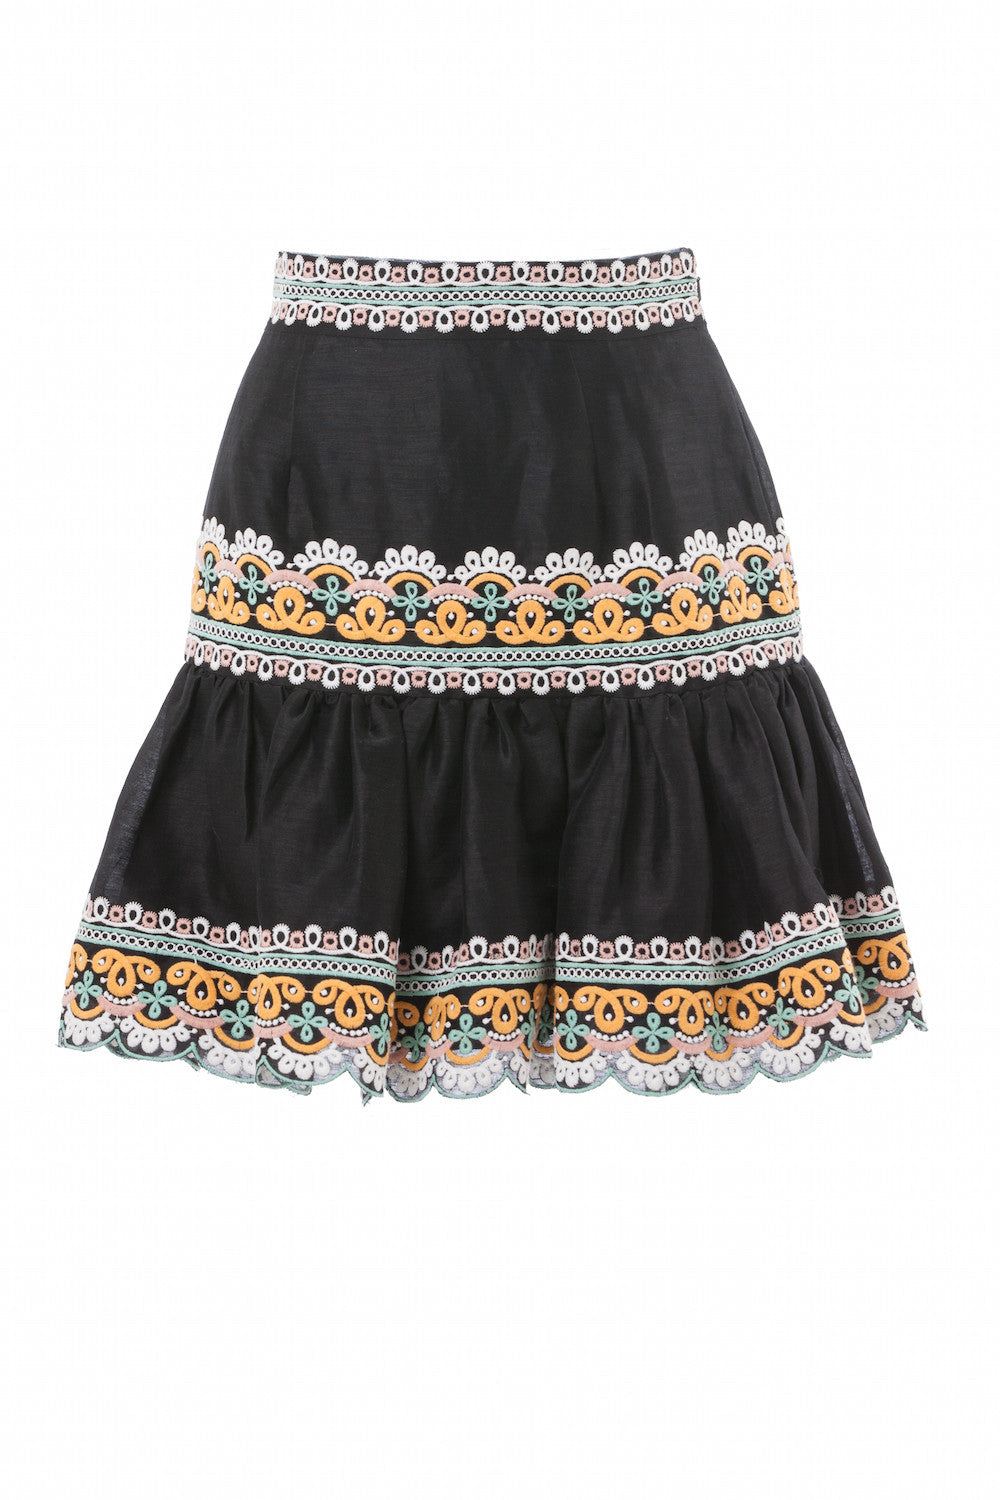 The Ida Skirt in Black